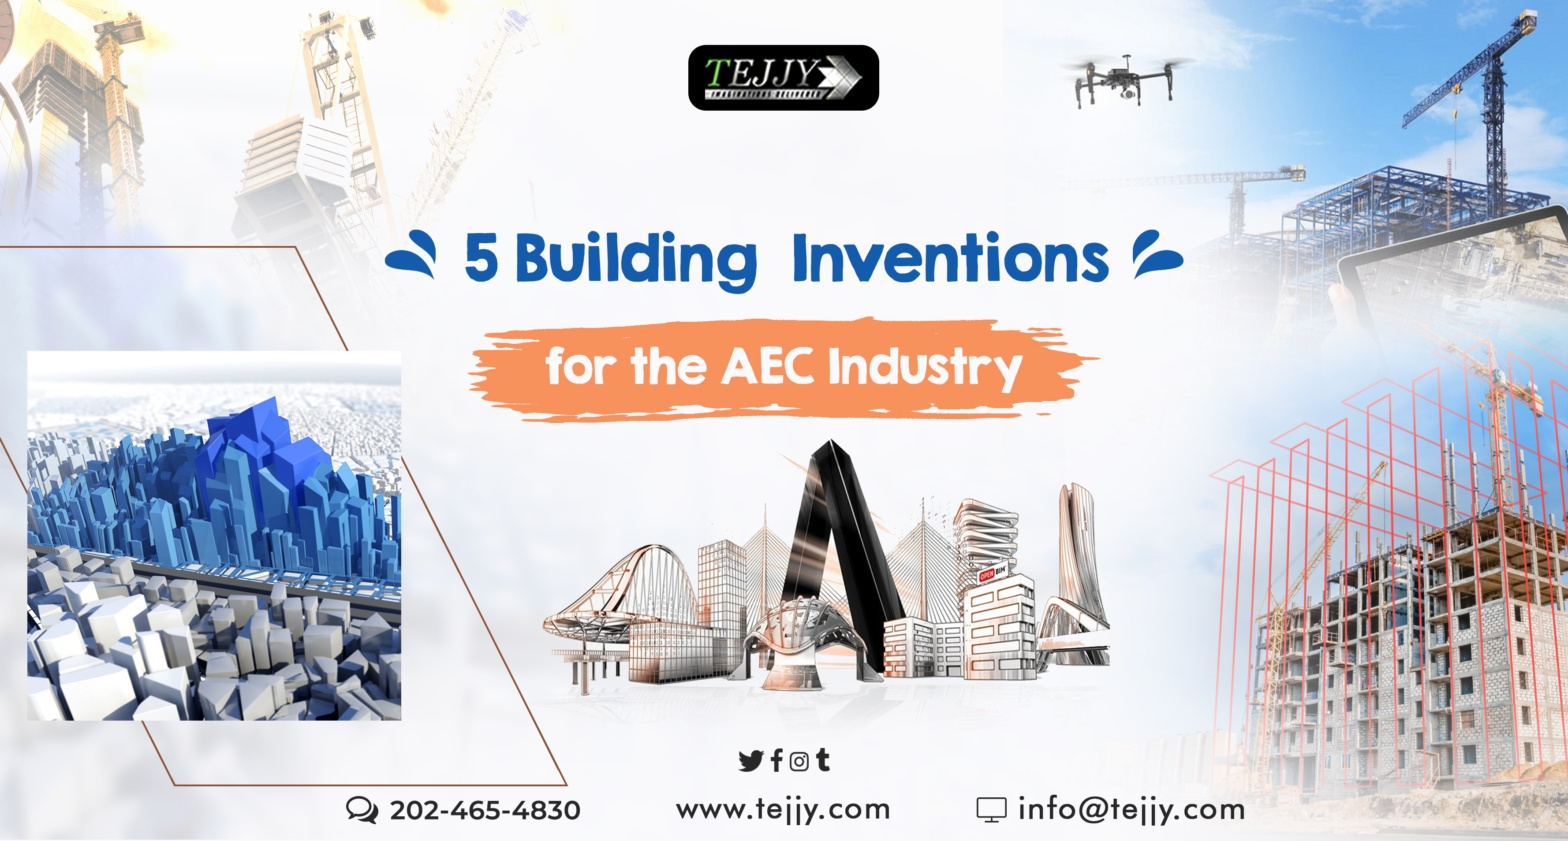 5 Building Inventions for the AEC Industry